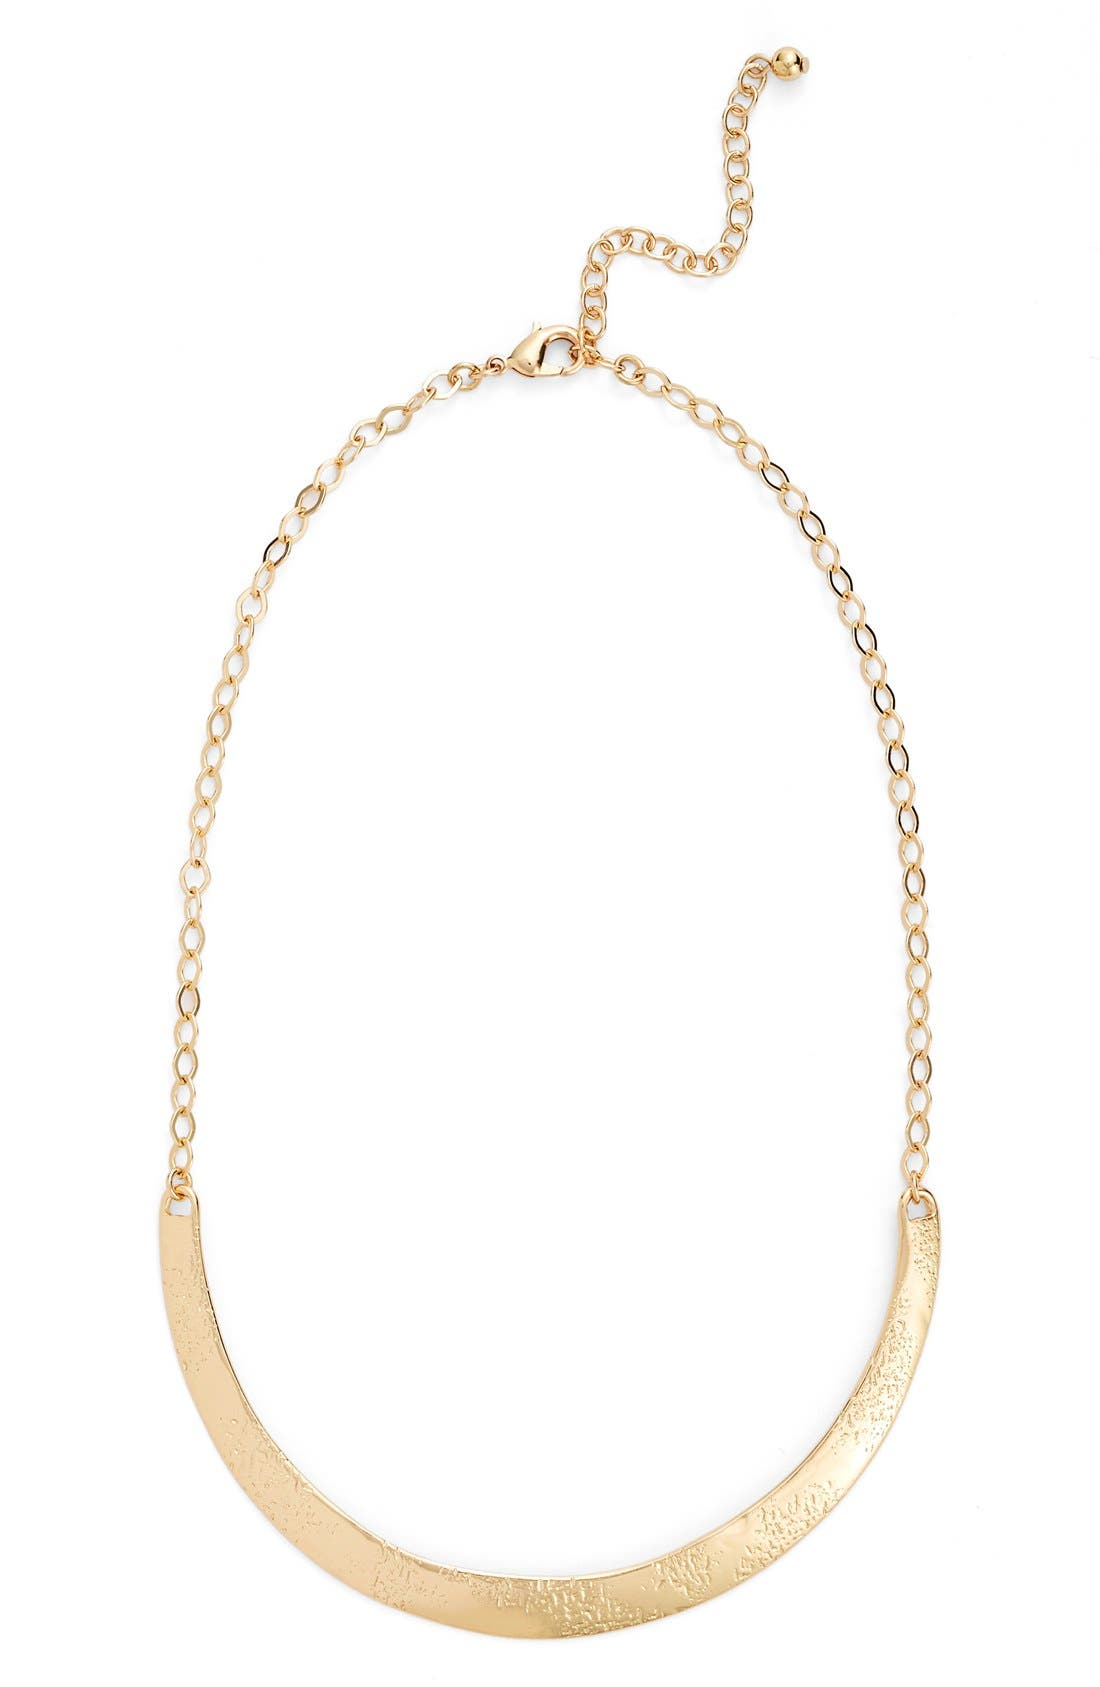 Main Image - Nordstrom Curve Bar Collar Necklace